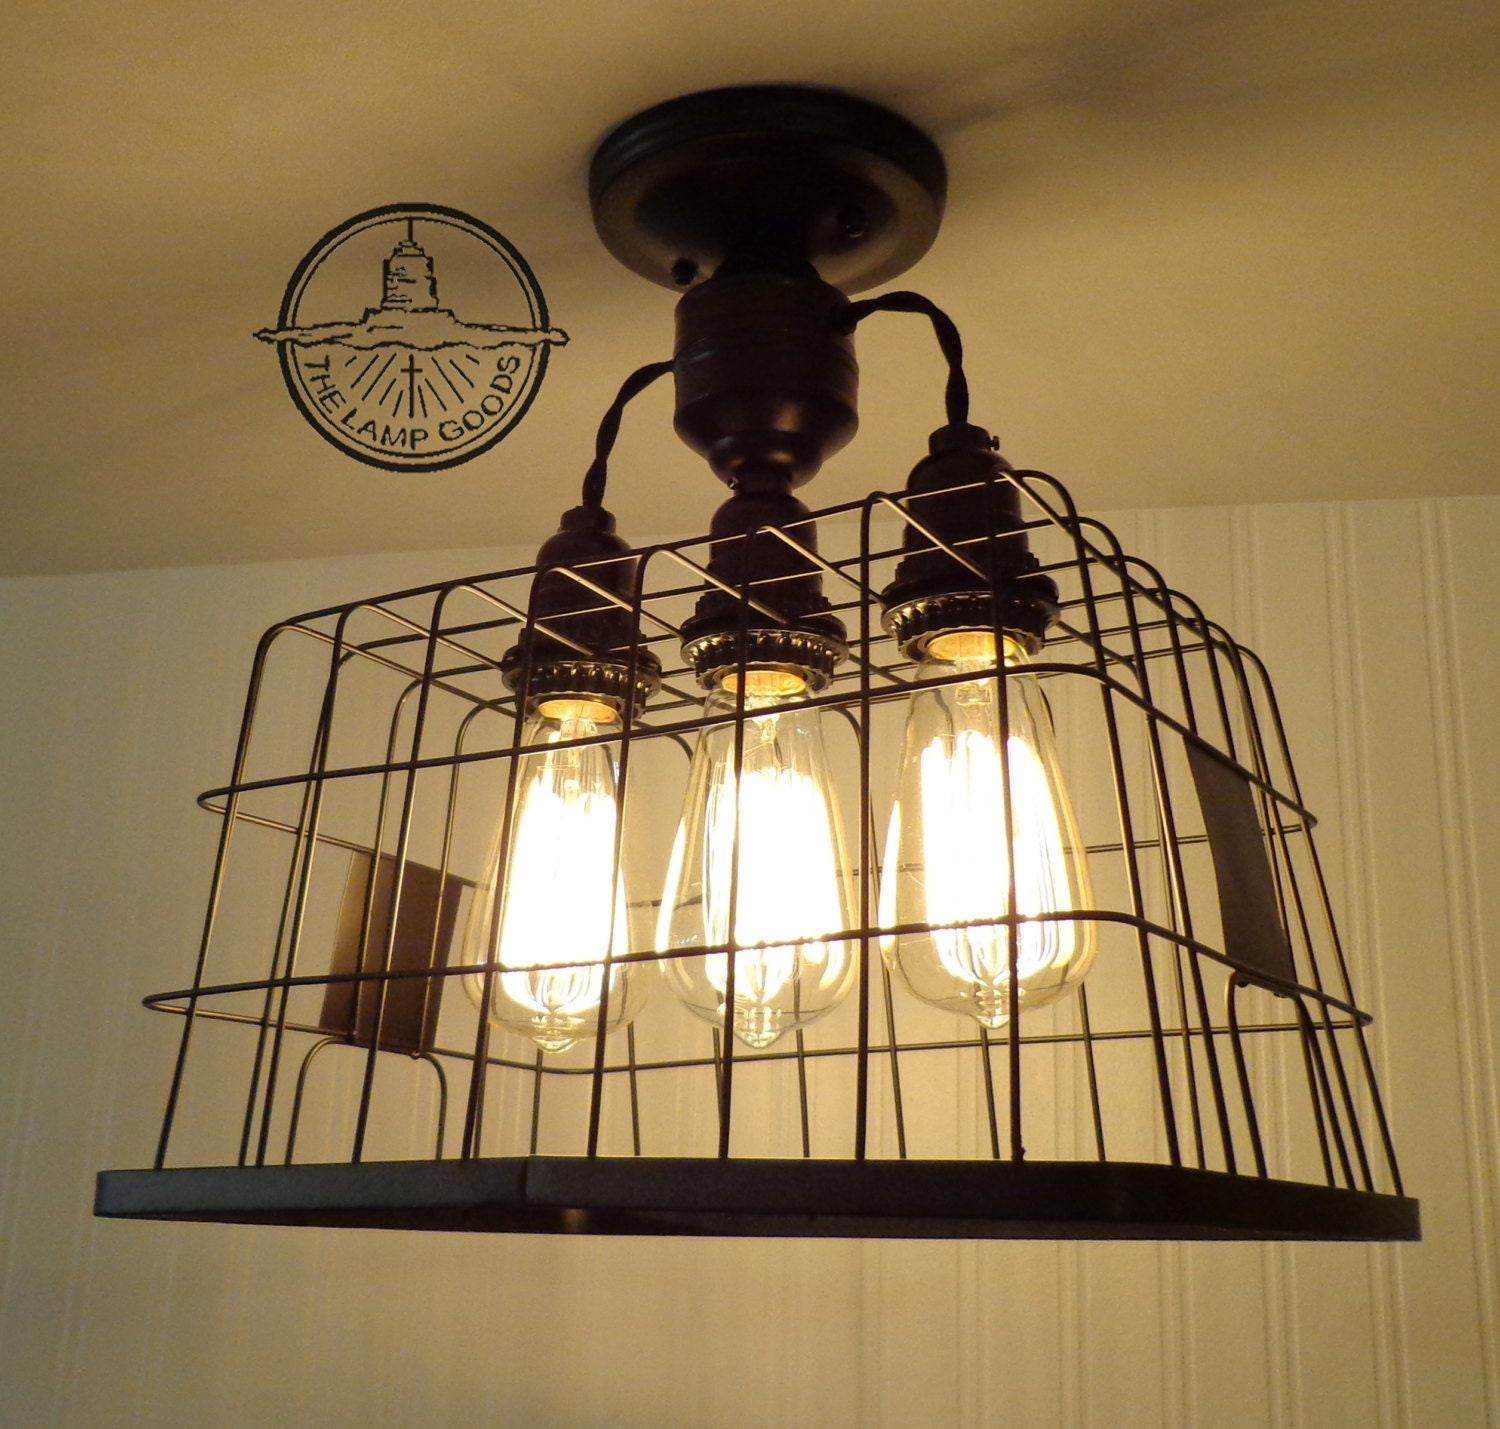 Just Reduced Rustic Handmade 3 Bulb Hanging Light Fixture Or: Basket CEILING LIGHT With Edison Bulbs Rustic Country